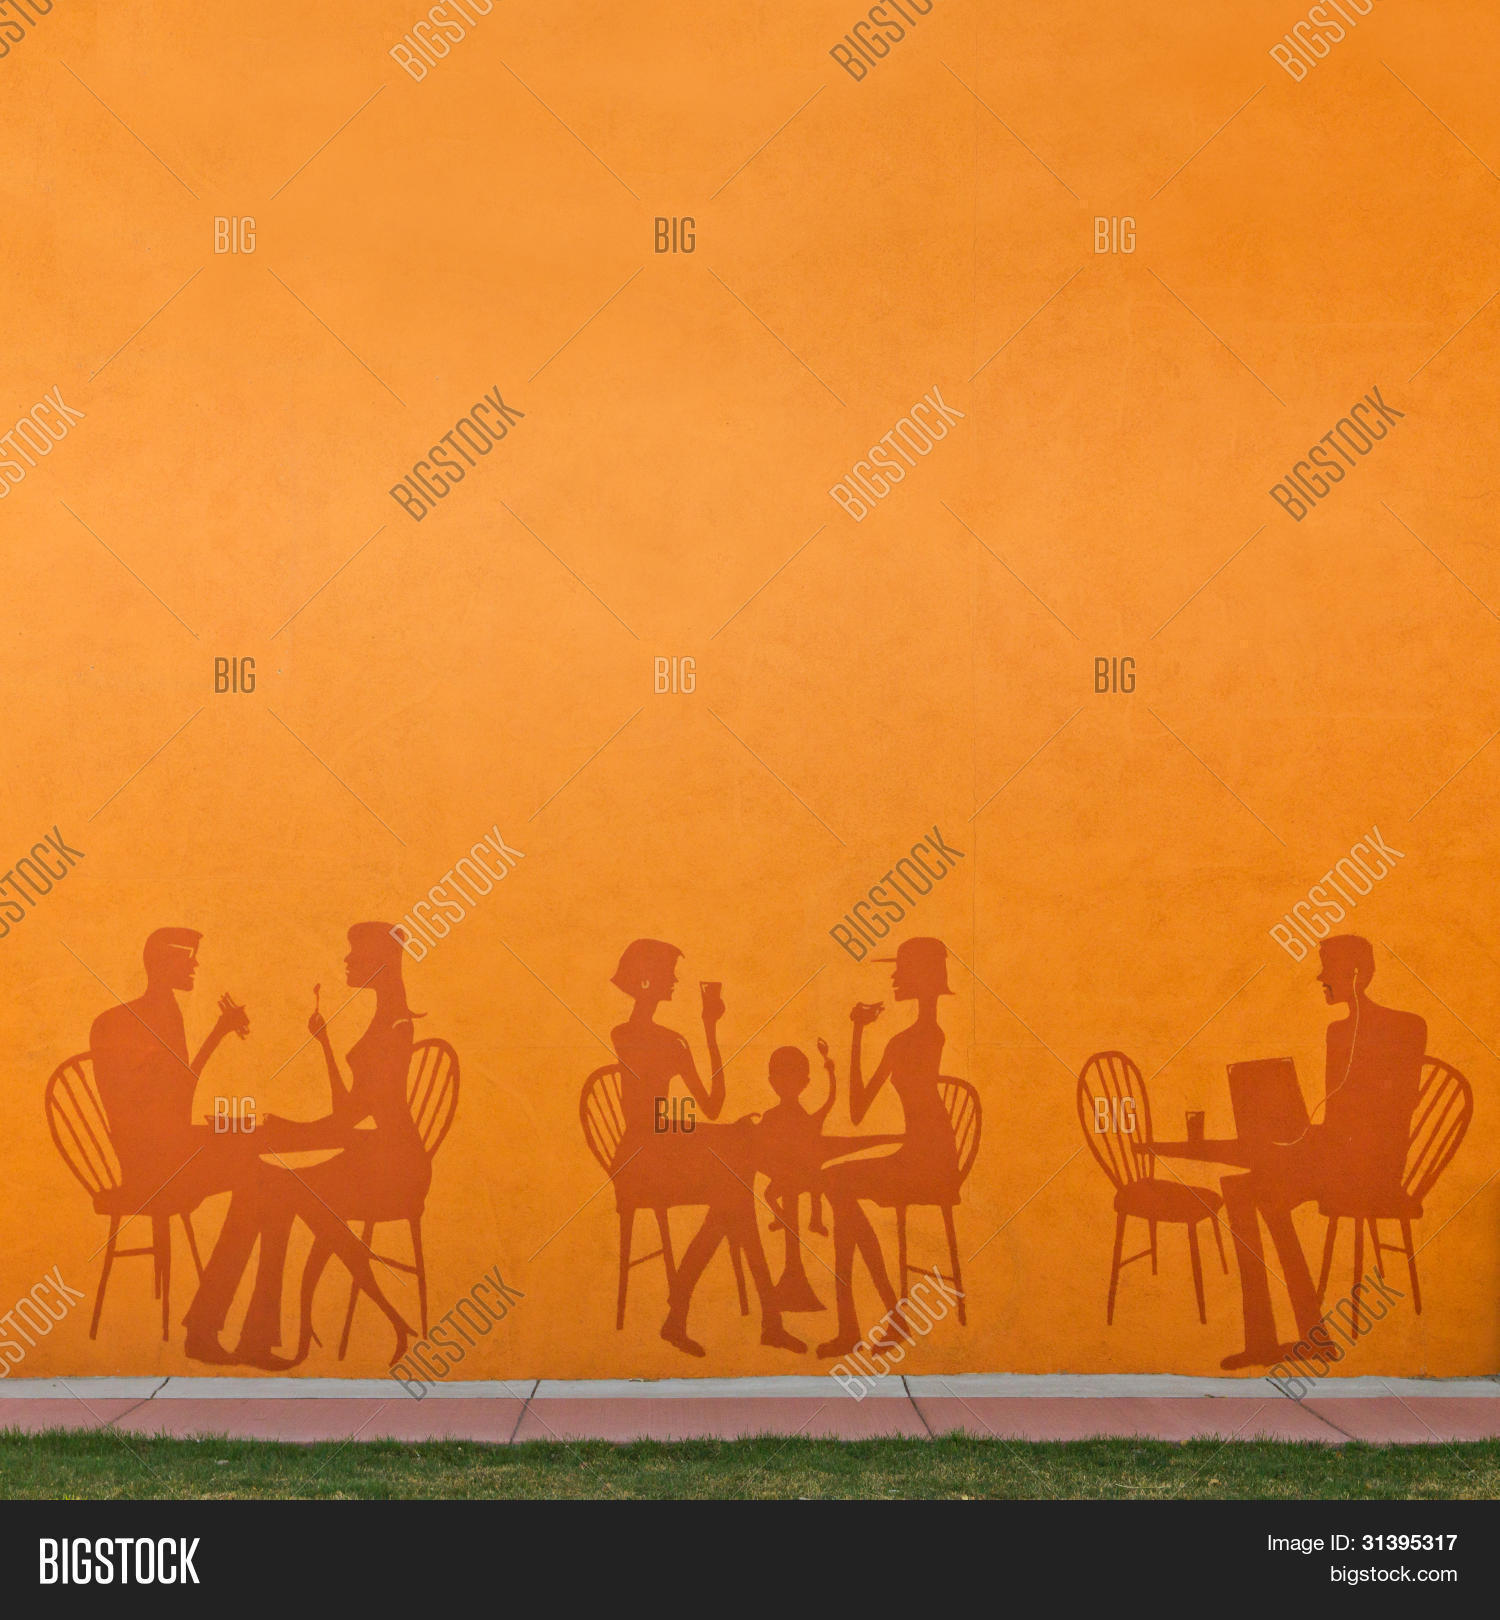 Restaurant Background With People Silhouettes People Eating Image & Photo  Bigstock